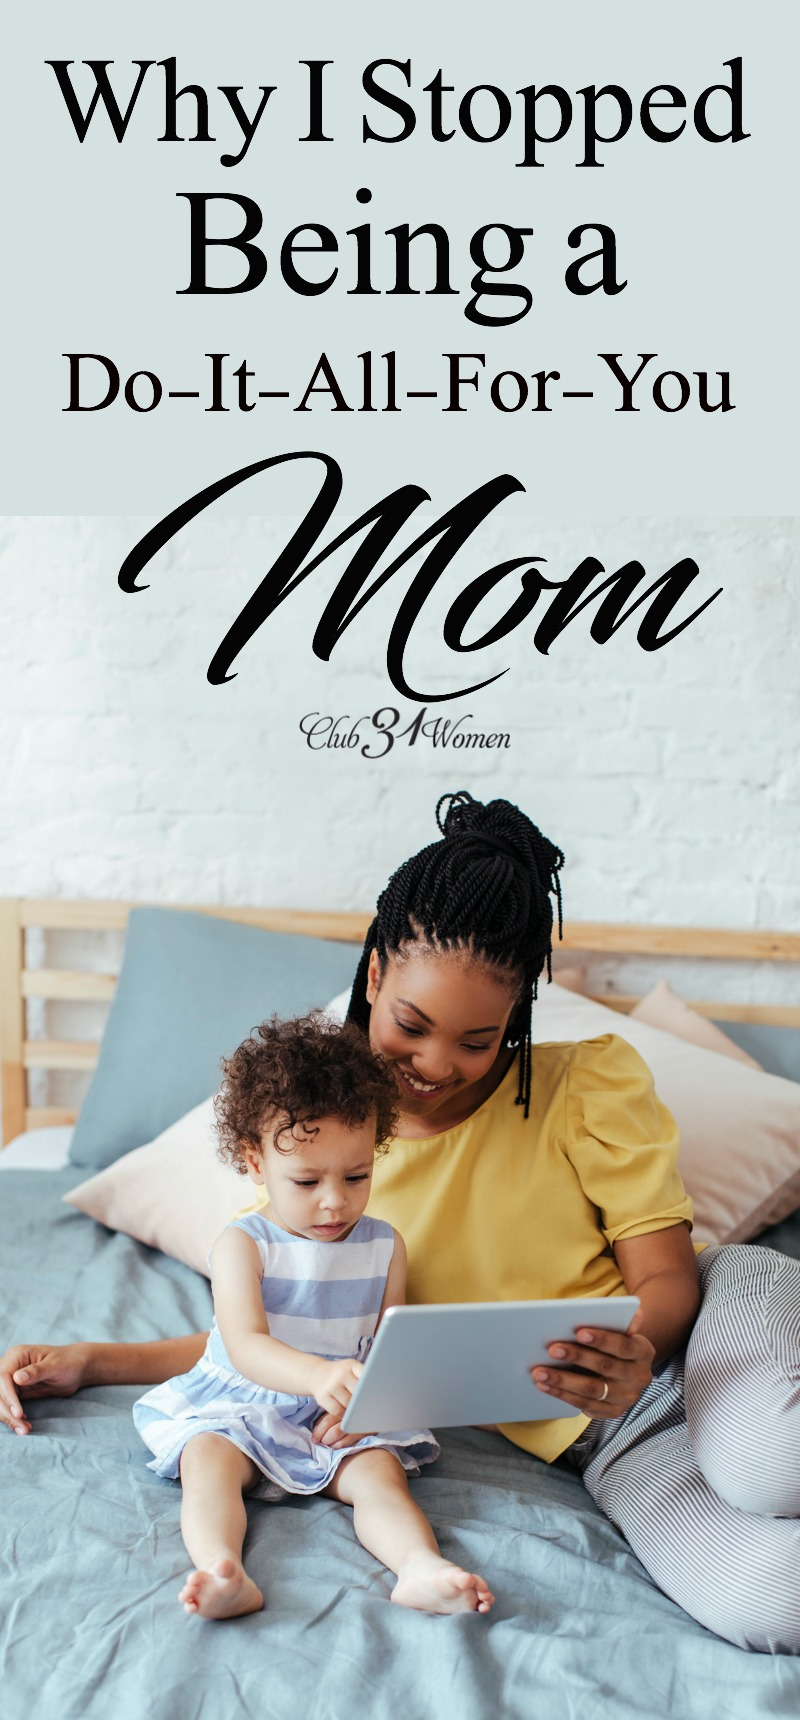 Now if you happen to be a mom who's running around trying to do everything for your kids, can I just say that it might be a mistake? via @Club31Women